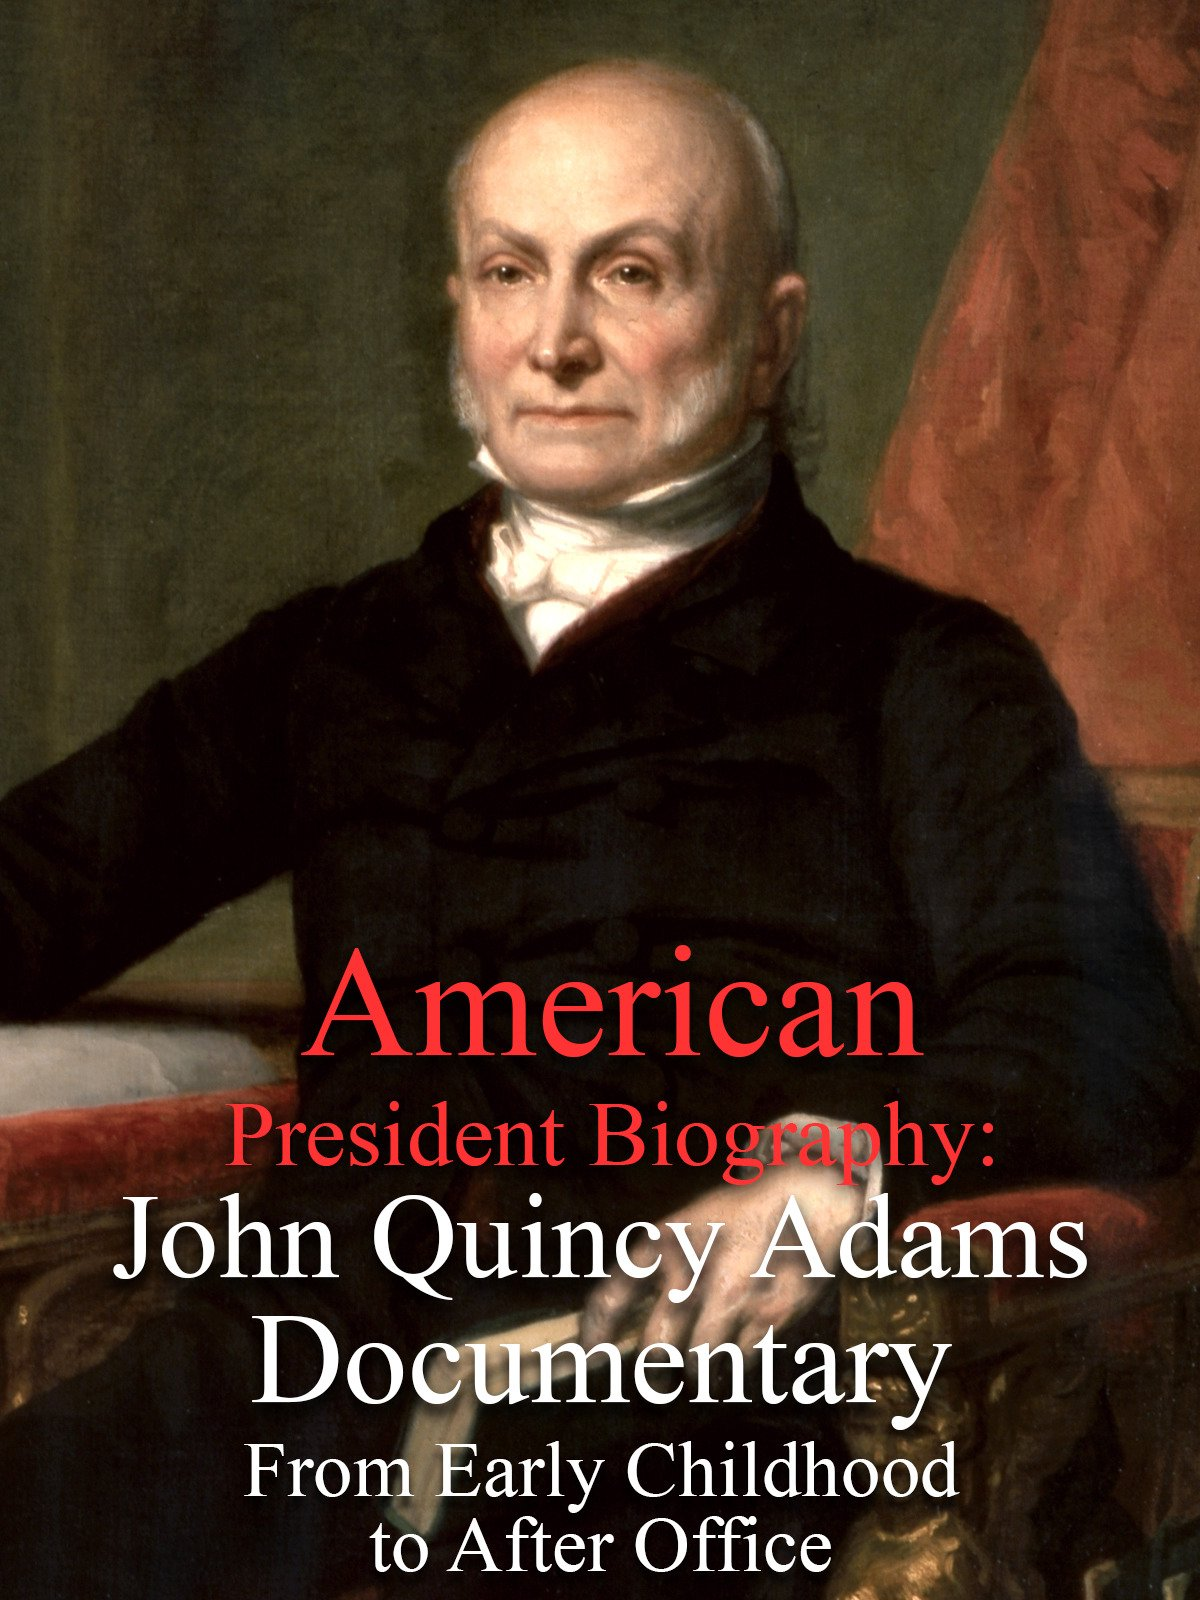 American President Biography: John Quincy Adams Documentary From Early Childhood to After Office